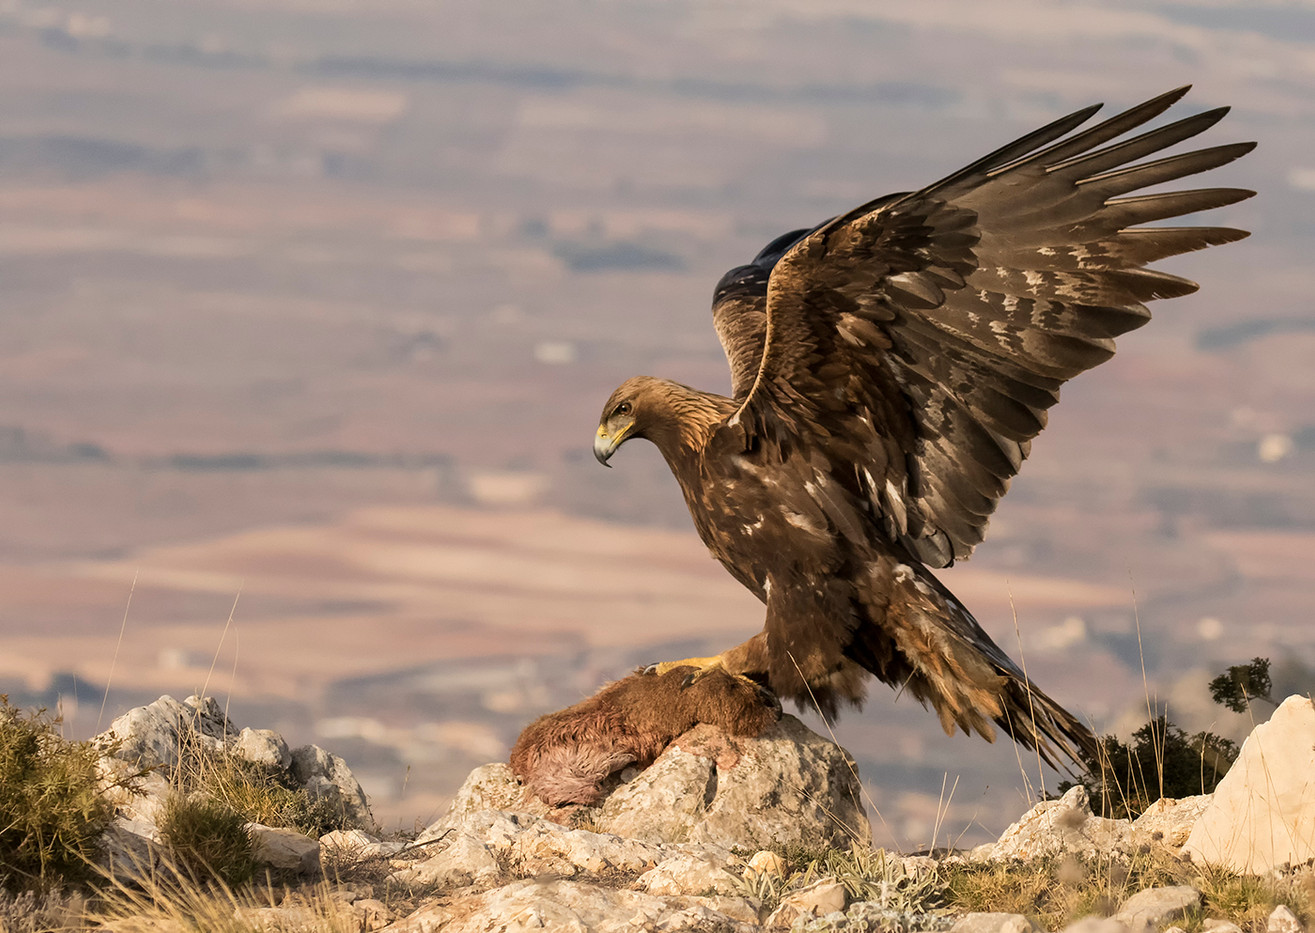 18 GOLDEN EAGLE WITH PREY by Glenn Welch